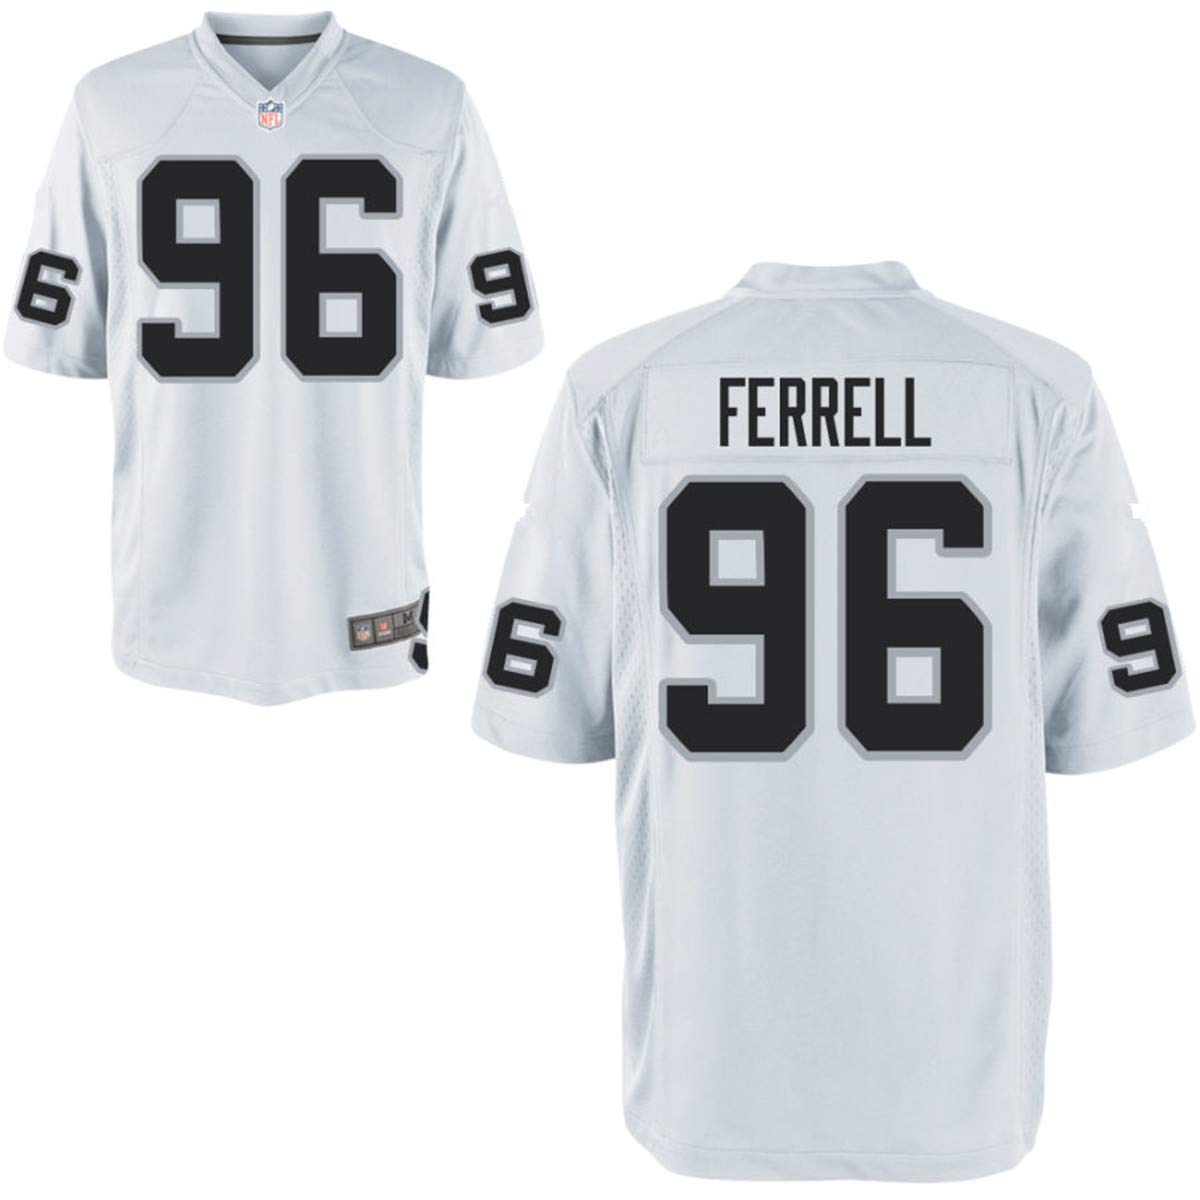 outlet store dd01b 21e06 Amazon.com: Men's Oakland Raiders #96 Clelin Ferrell NFL ...